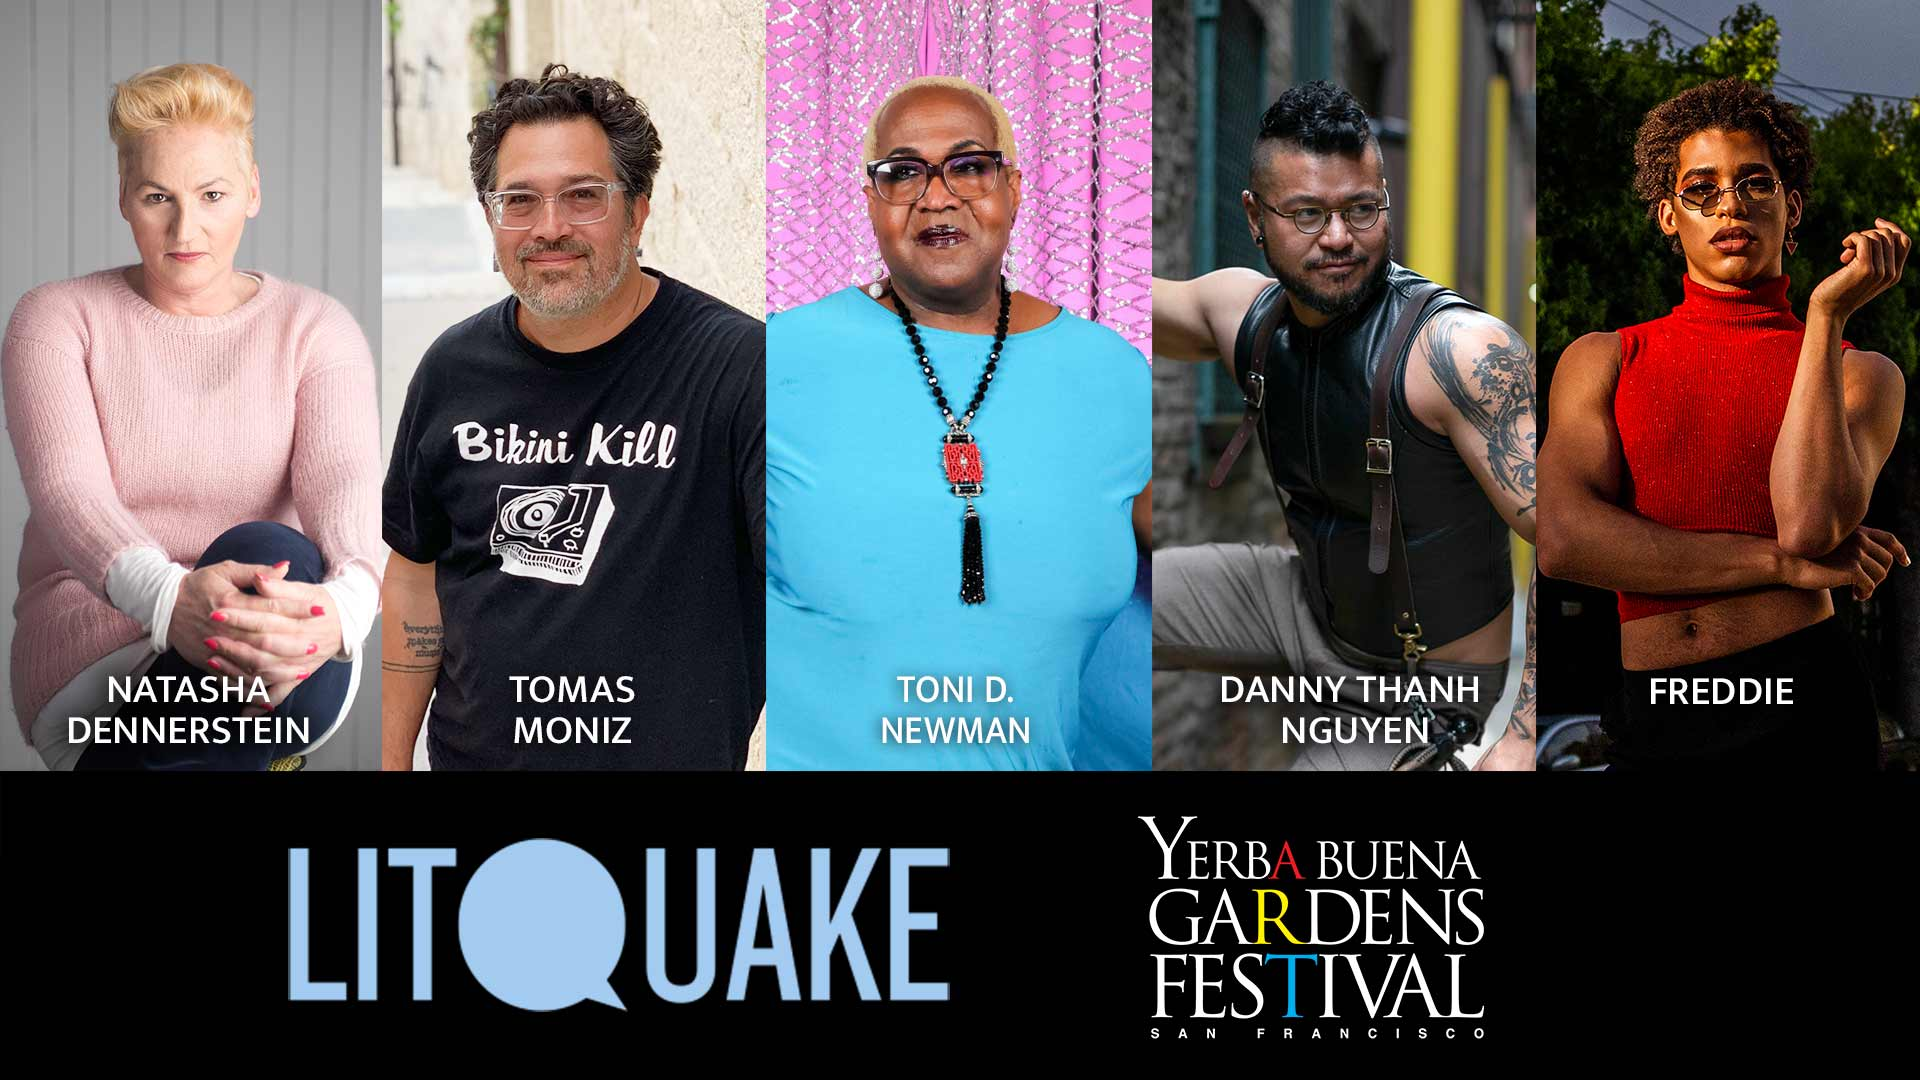 Homepage | Official site of Yerba Buena Gardens Festival